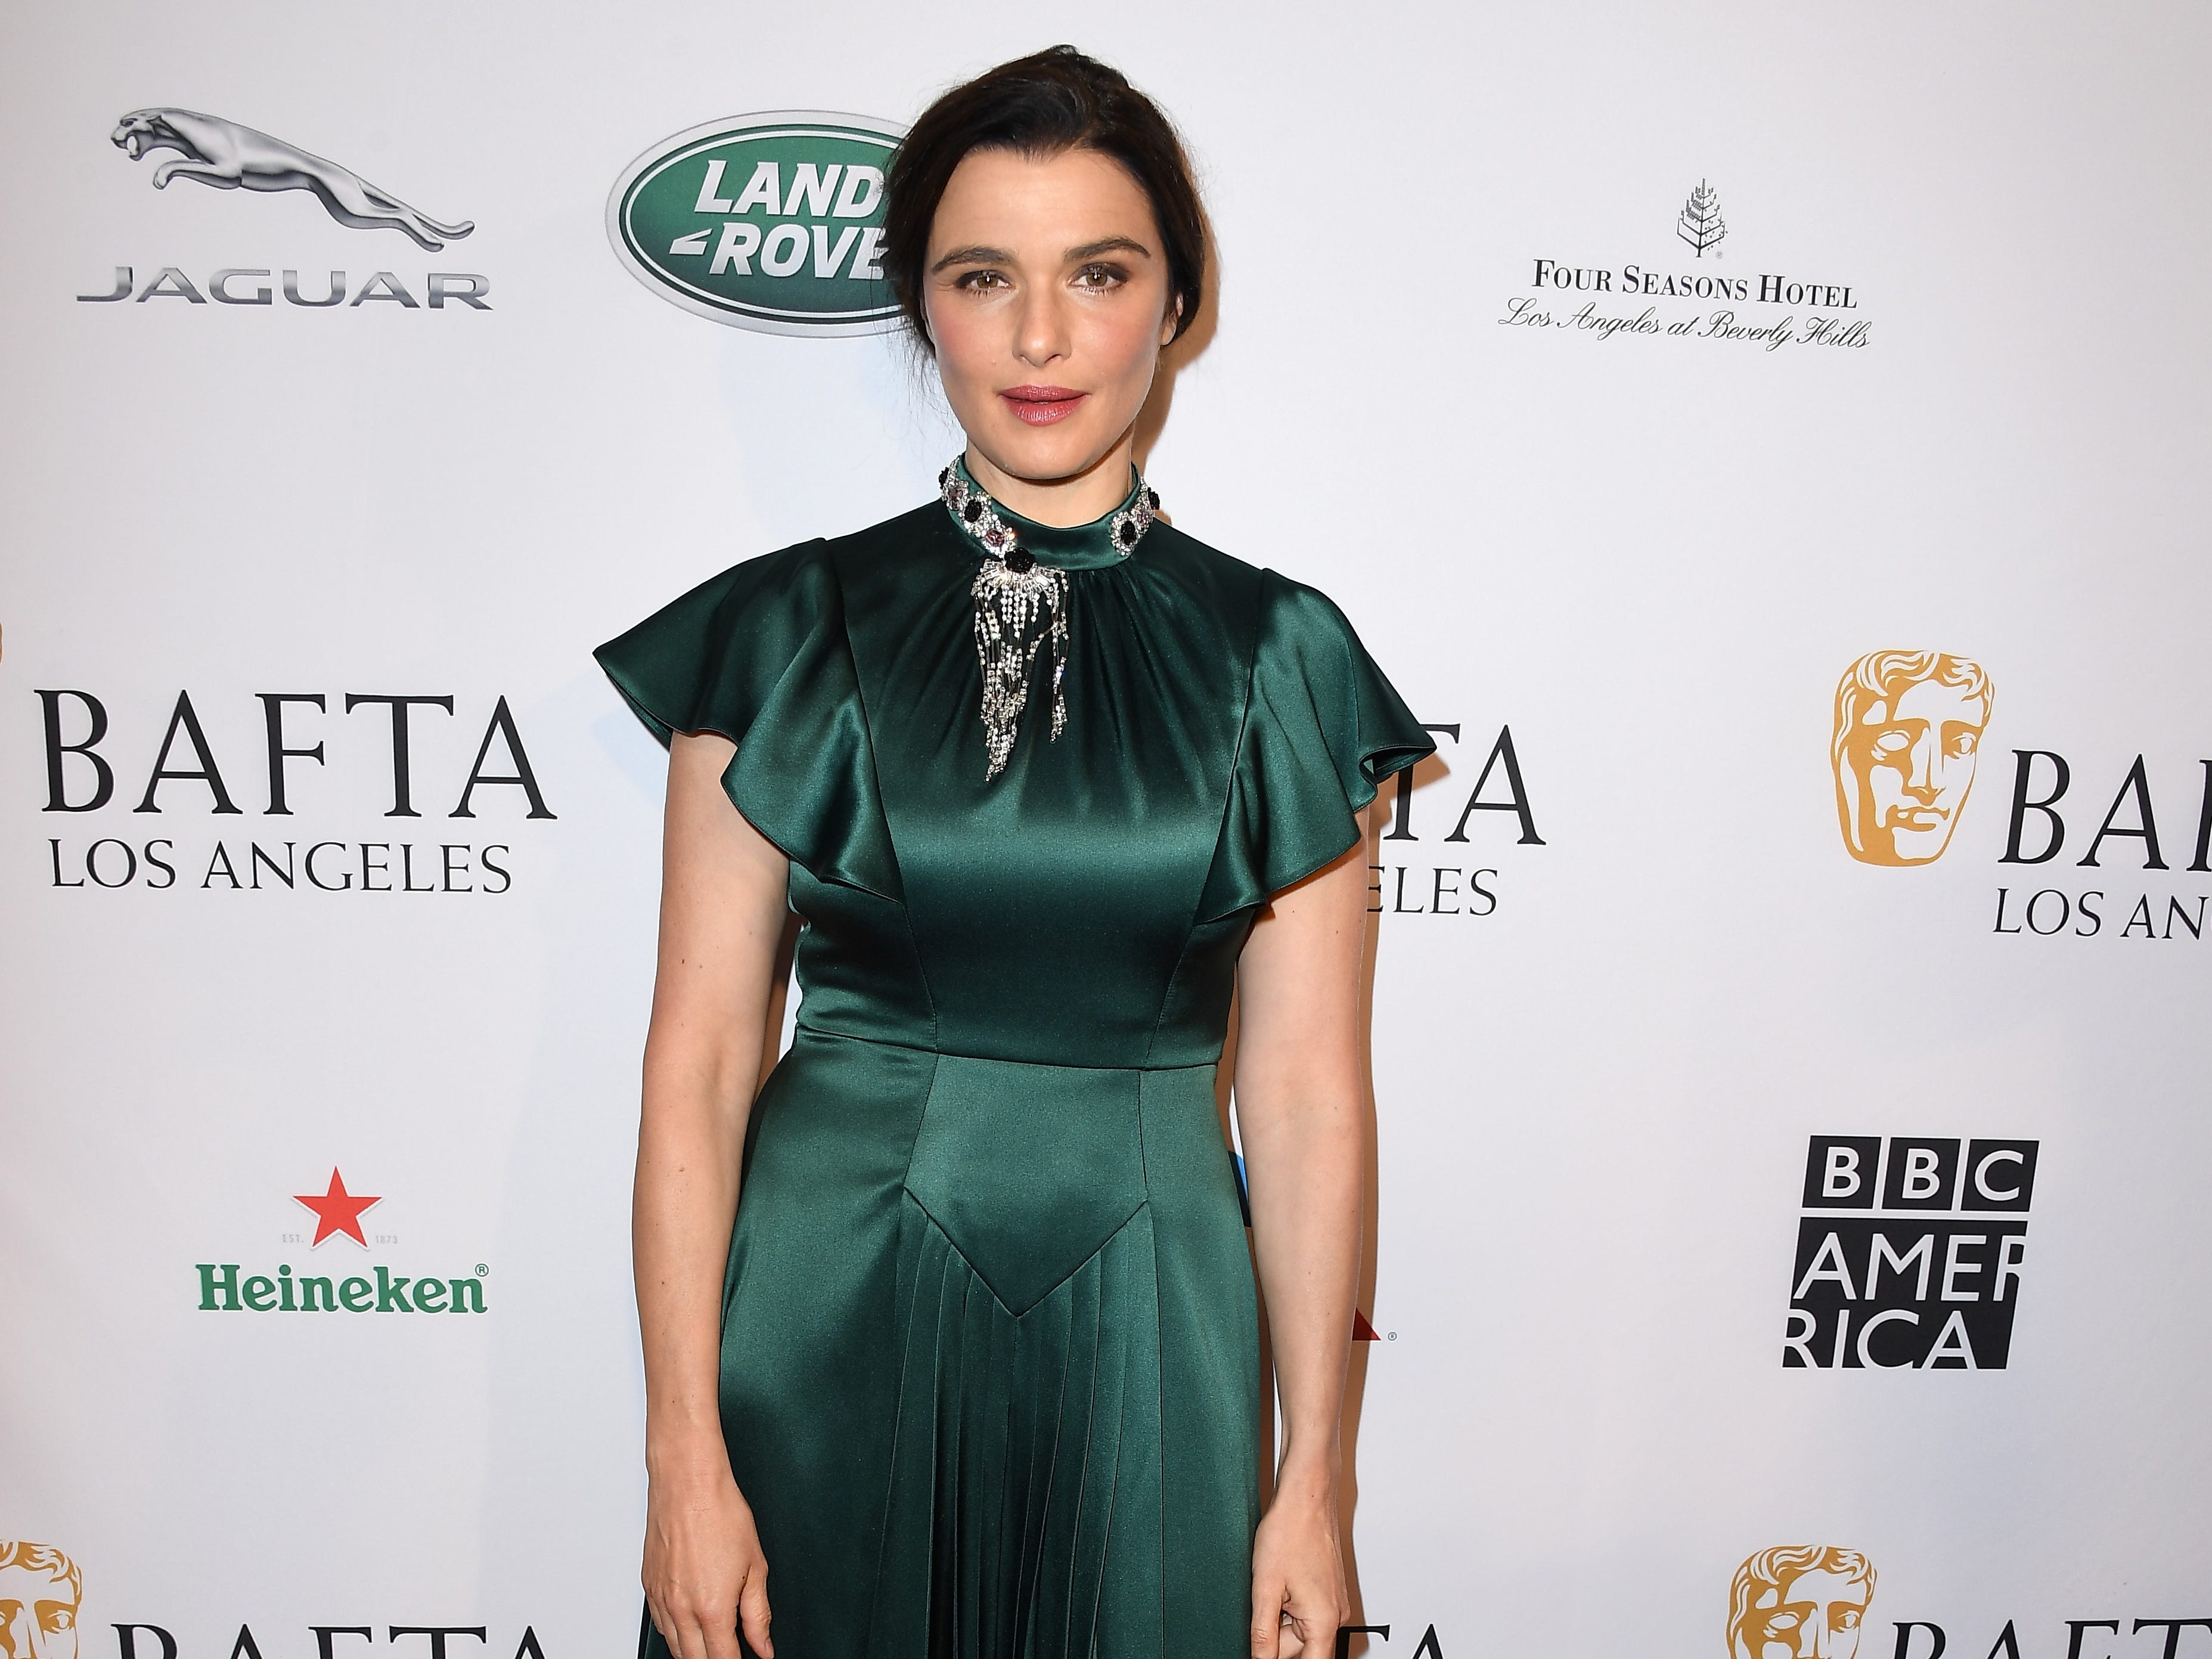 LOS ANGELES, CA - JANUARY 05:  Rachel Weisz attends The BAFTA Los Angeles Tea Party at Four Seasons Hotel Los Angeles at Beverly Hills on January 5, 2019 in Los Angeles, California.  (Photo by Steve Granitz/WireImage) ORG XMIT: 775261683 ORIG FILE ID: 1077928792